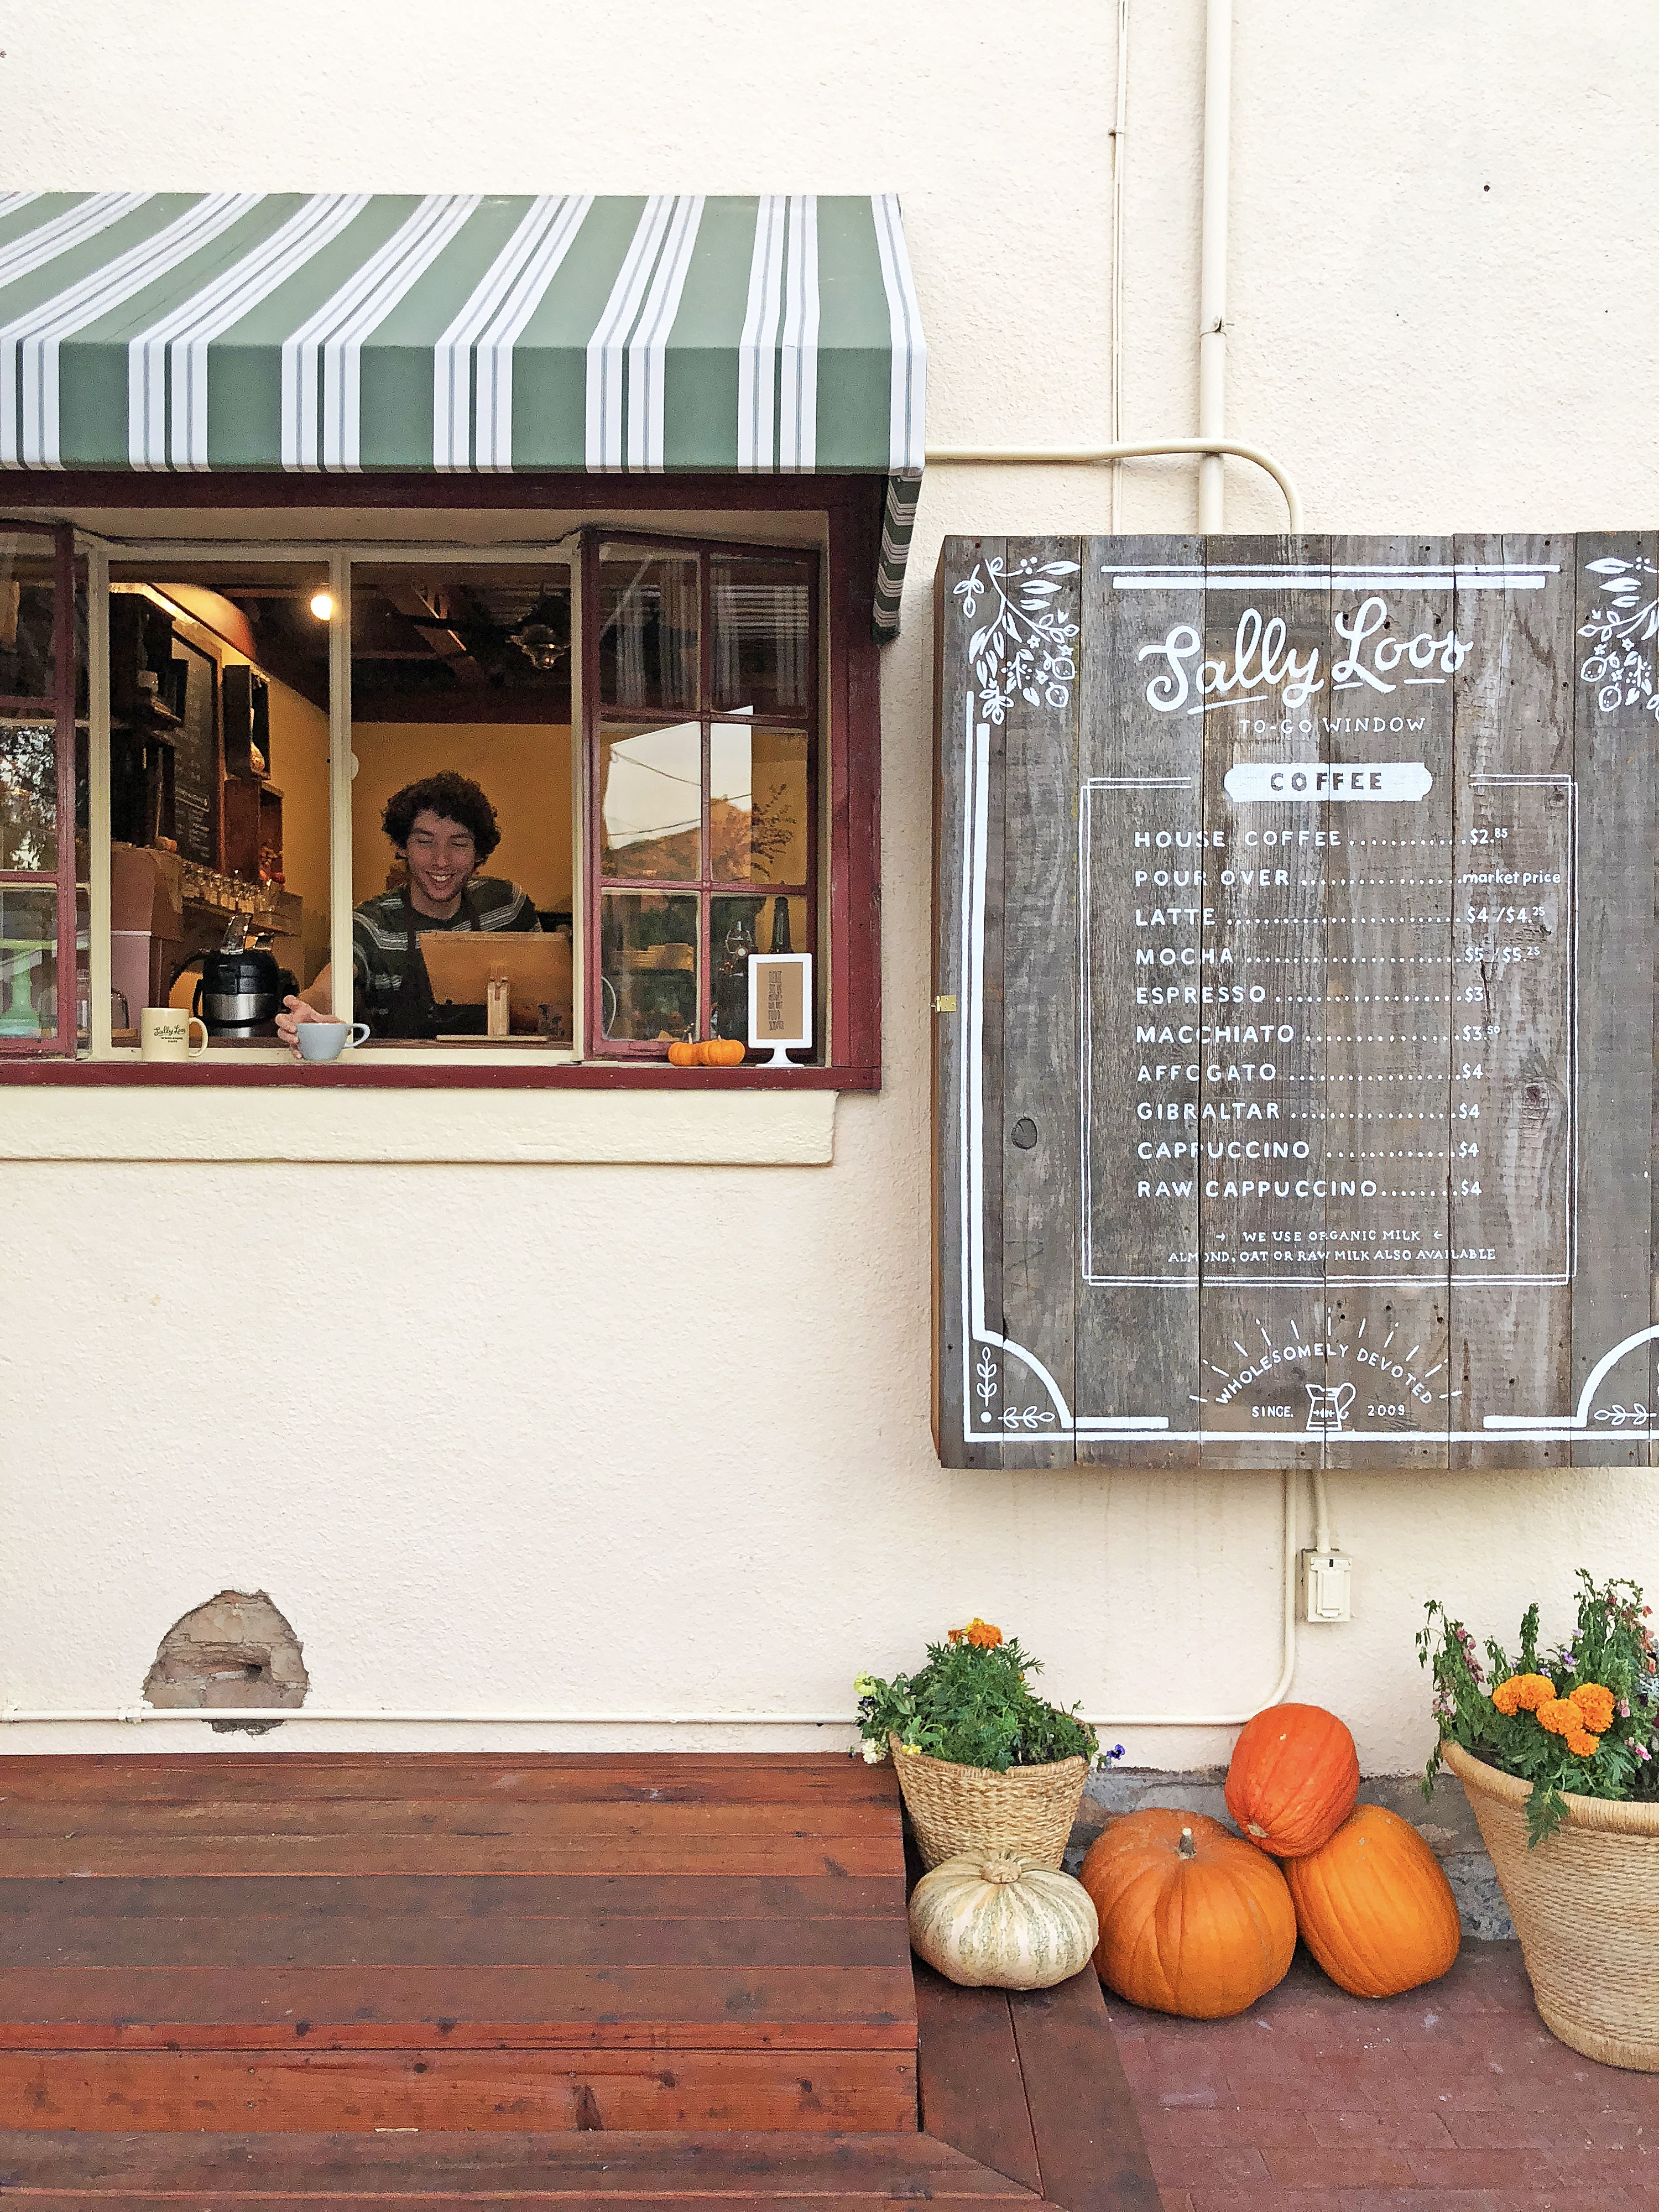 Sally Loo's Wholesome Café opens quick coffee window ...